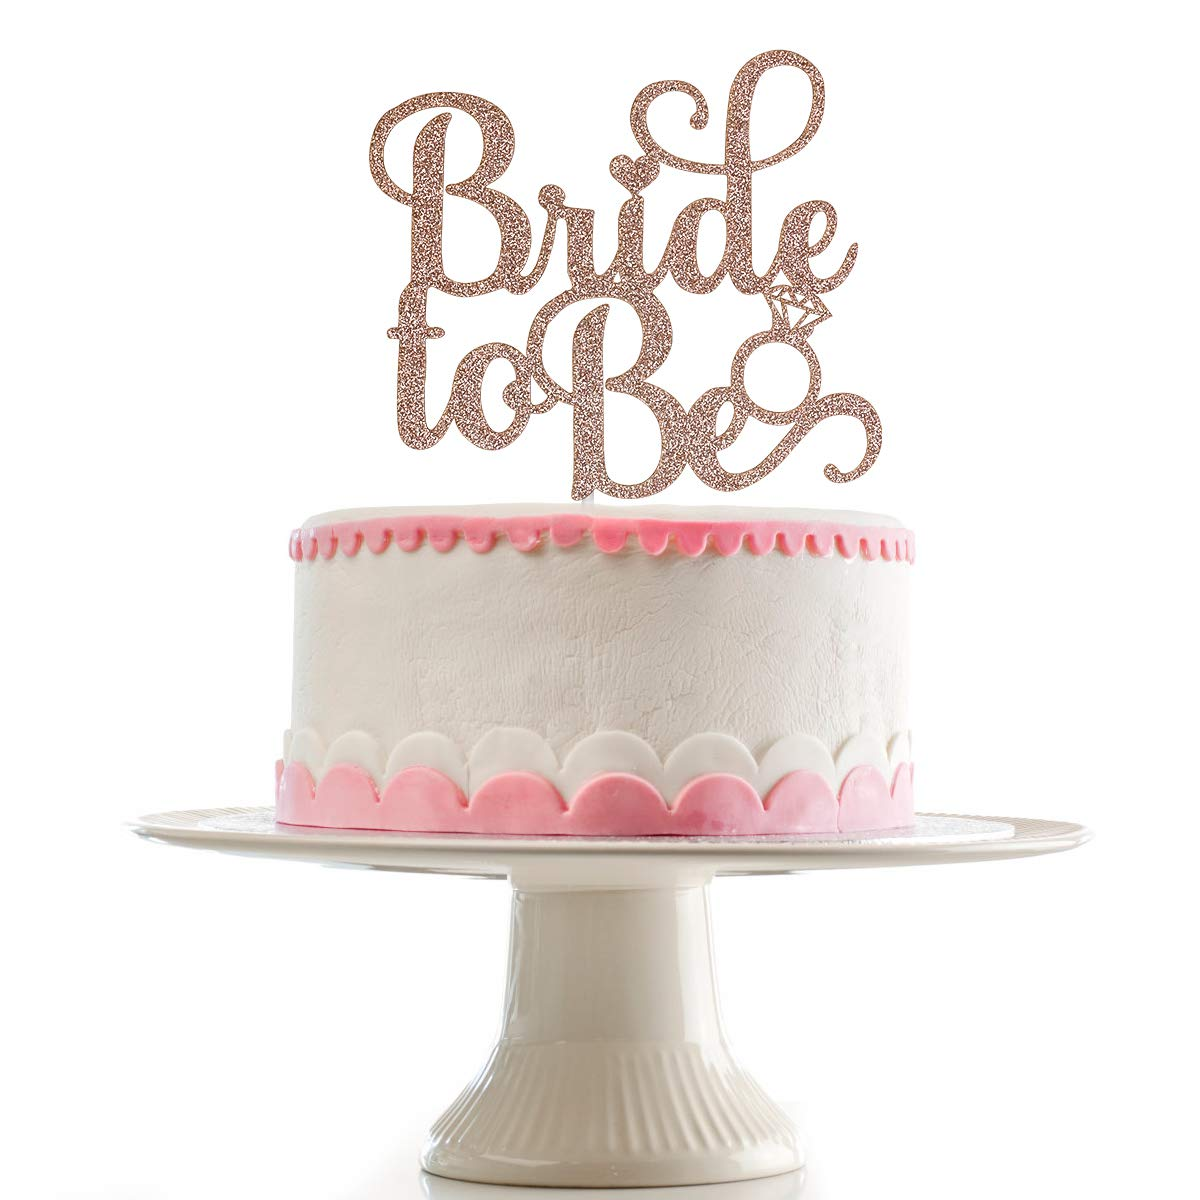 Rose Gold Glittery Bride To Be Cake Topper for Wedding Party Bachelorette Party Bridal Shower Party Decoration Supplies